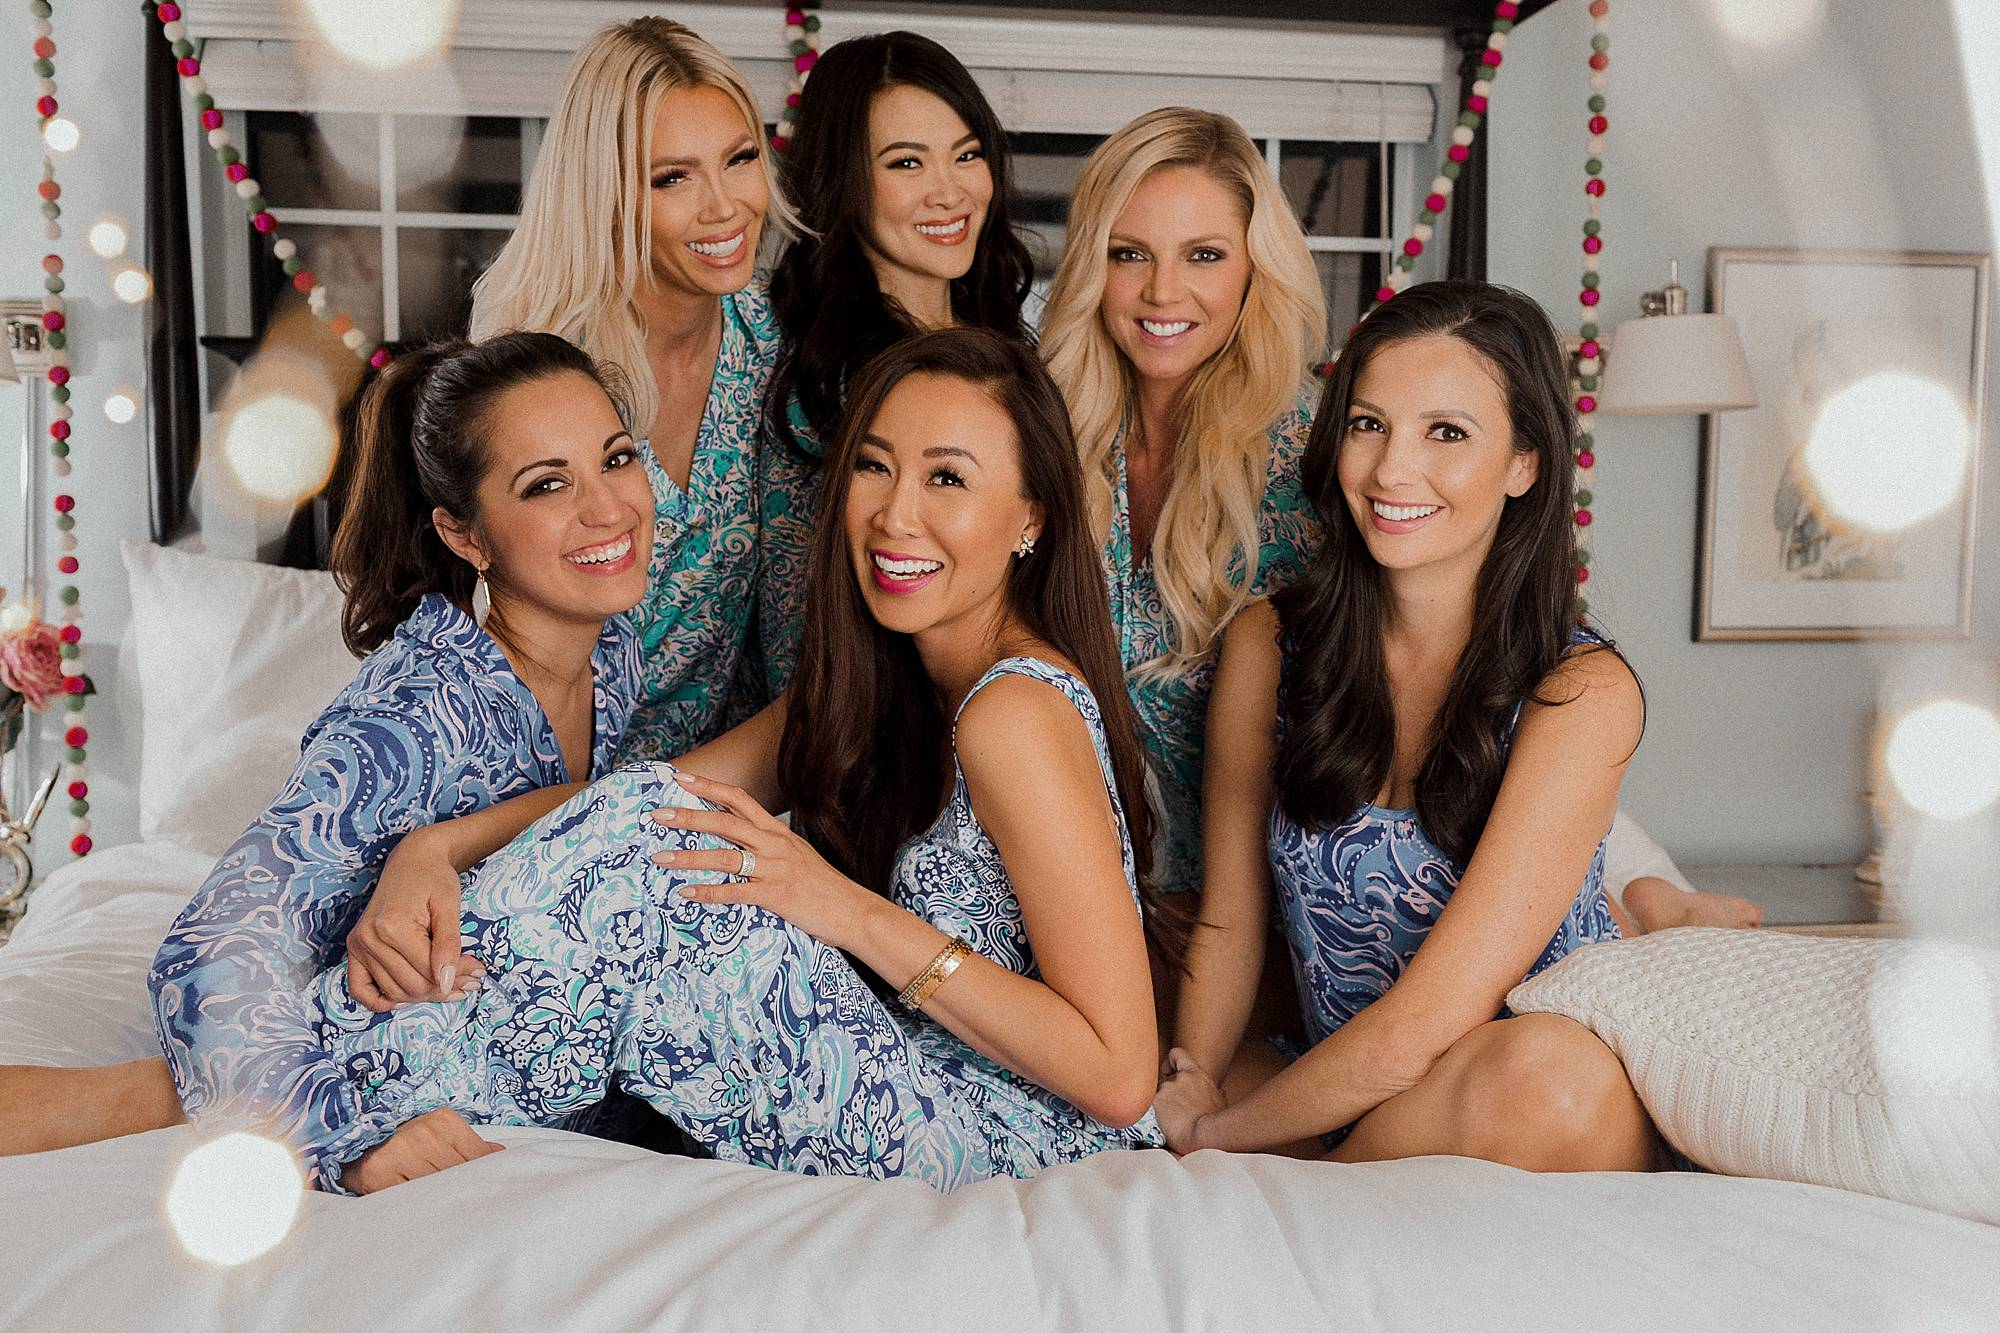 Lilly Pulitzer pajama party 2018 girls pajama Christmas party girls on bed sleepover - lifestyle blogger Diana elizabeth